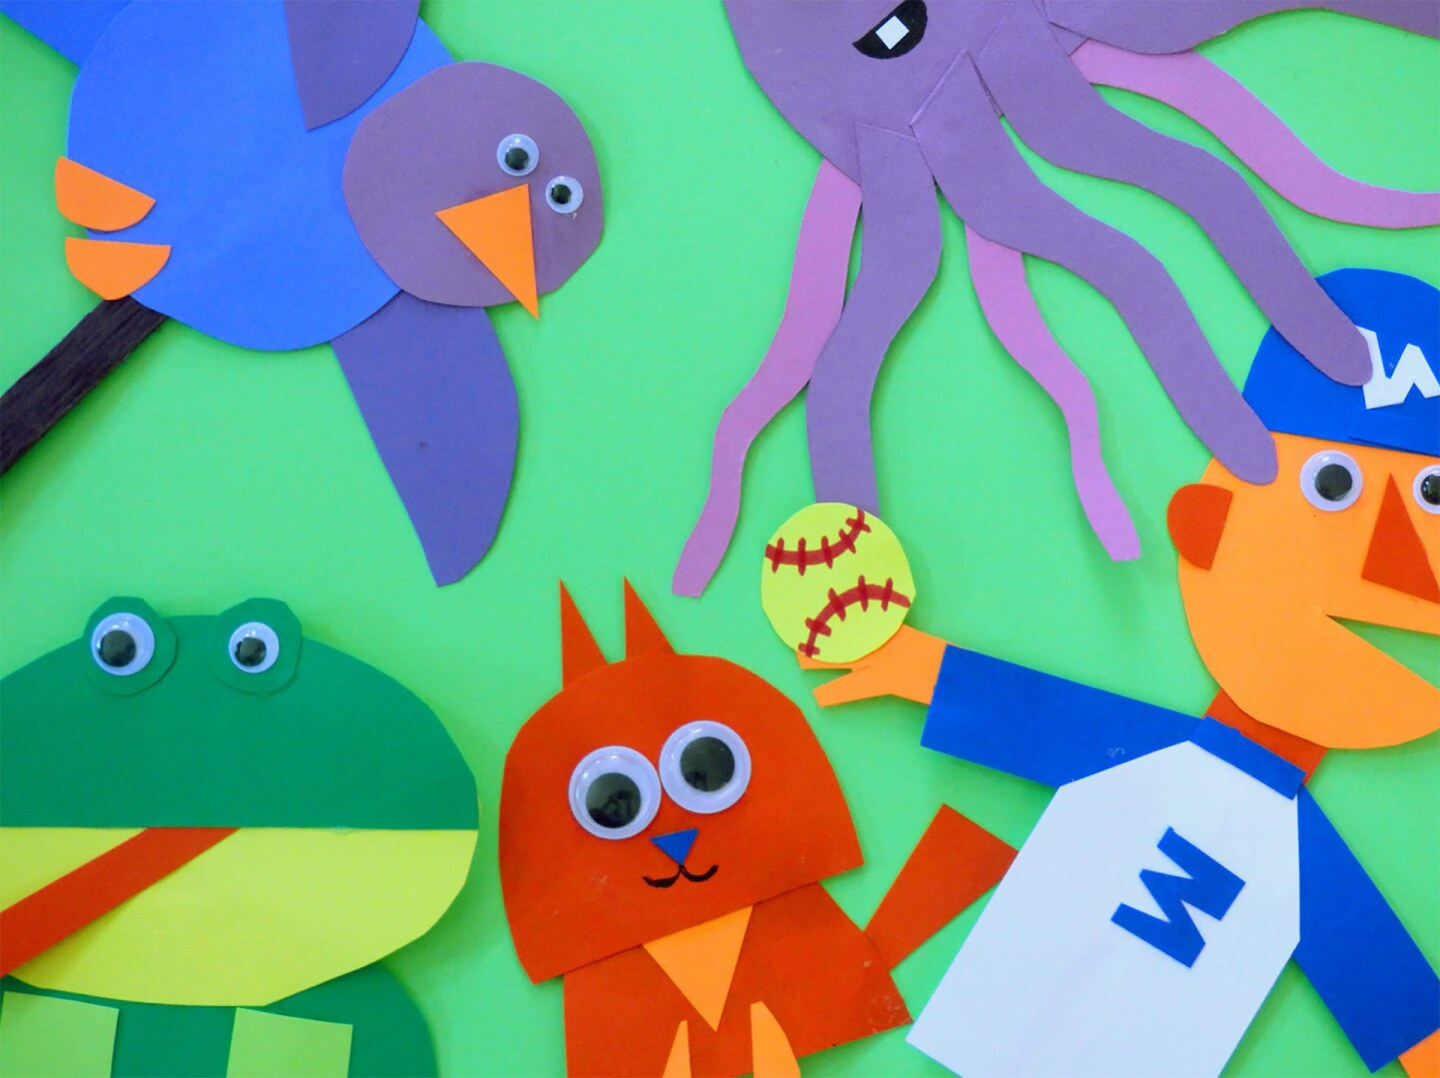 Several puppets of animals (kitty, frog, bird, squid and baseball player) on top of a green background